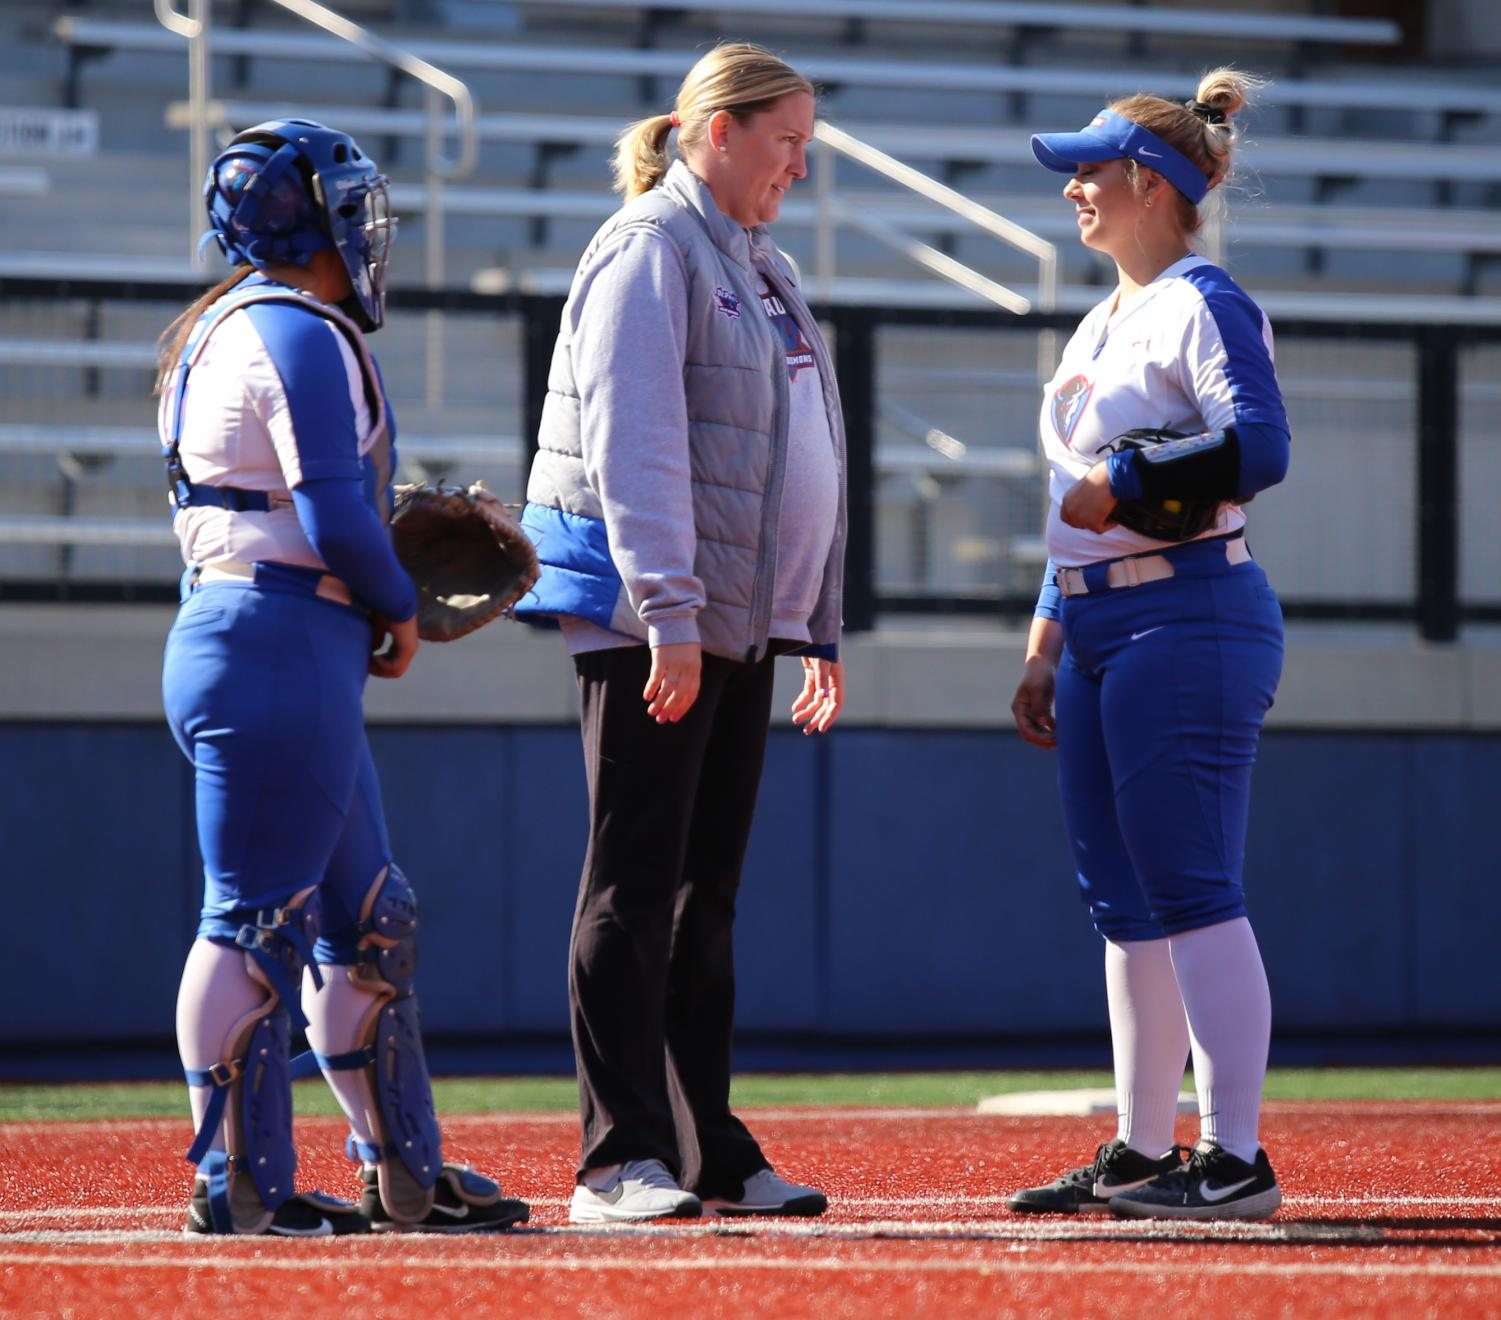 DePaul head coach Tracie Adix-Zins visits the mound to talk with her sophomore pitcher Natalie Halvorson during the second game of a double-header with Providence on Saturday at Cacciatore Staduim. The Blue Demons won both games against the Friars.